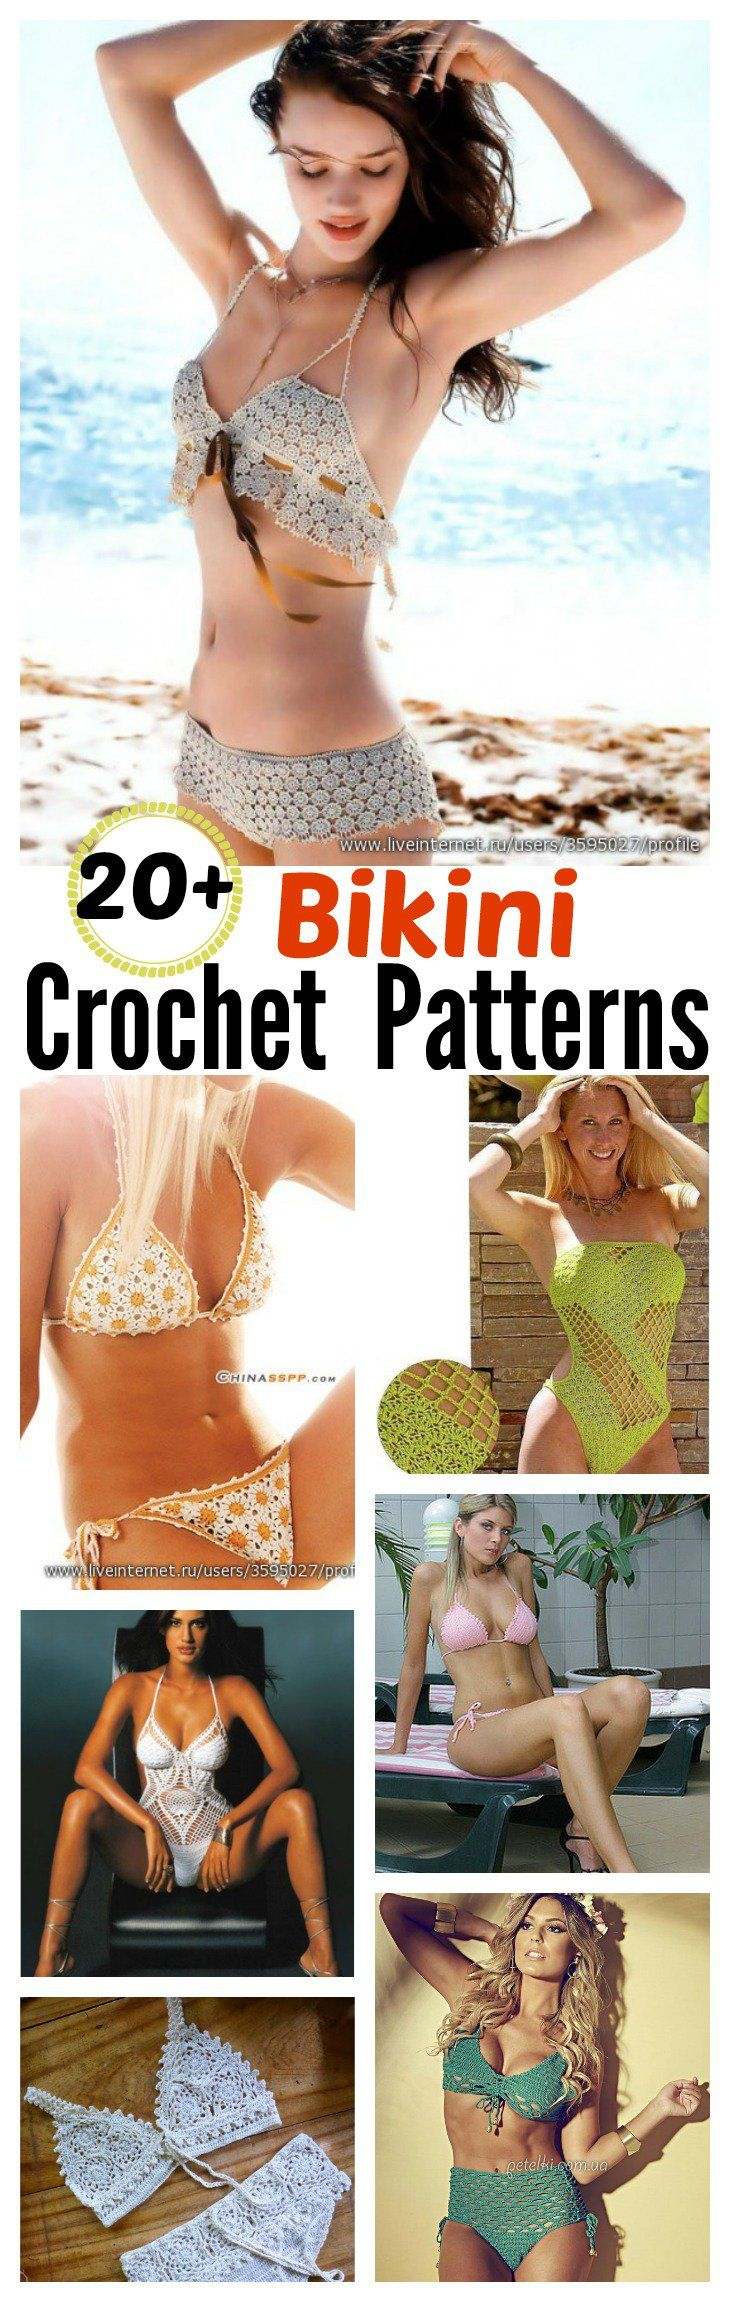 20+ Free Crochet Bikini Patterns